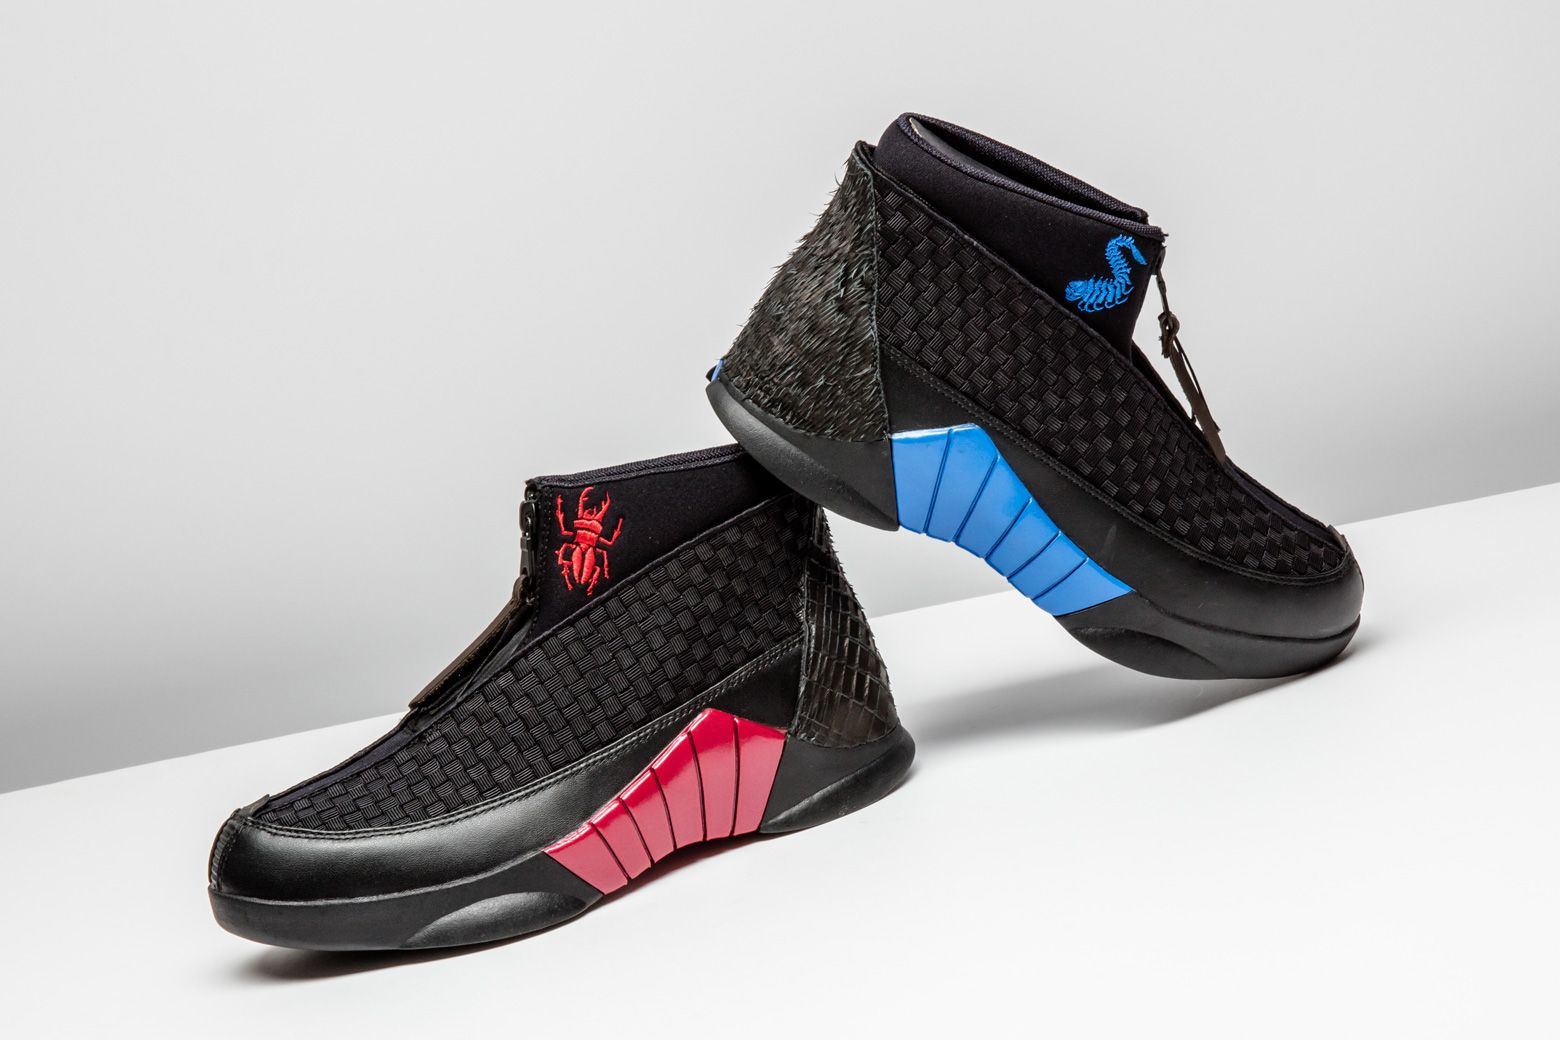 db8a7c8779e Tinker Hatfield designed this Air Jordan 15 Retro with the Oscar nominated  film 'Kubo and the Two Strings' in mind.